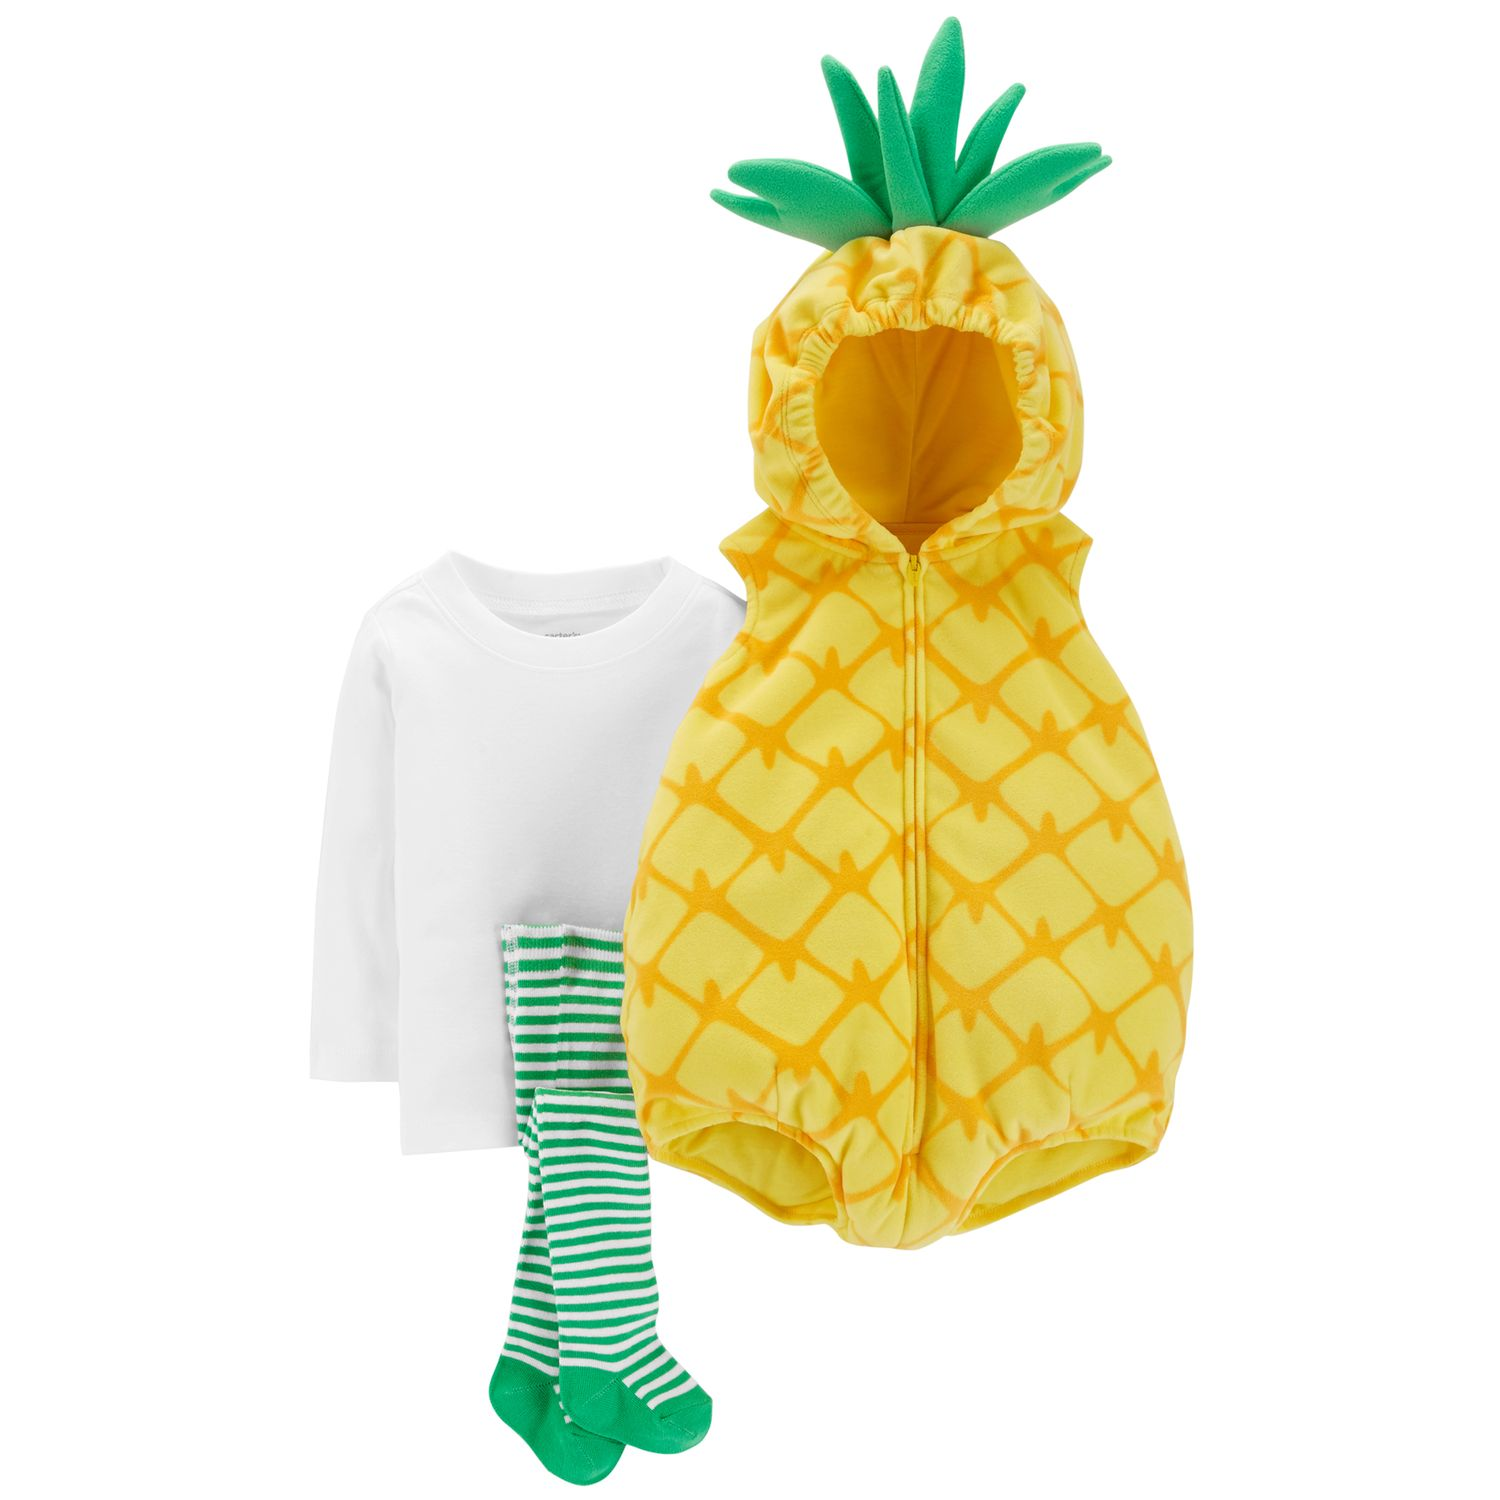 Baby Girl Carteru0027s Little Pineapple Halloween Costume  sc 1 st  Kohlu0027s & Costumes Pretend Play Toys | Kohlu0027s